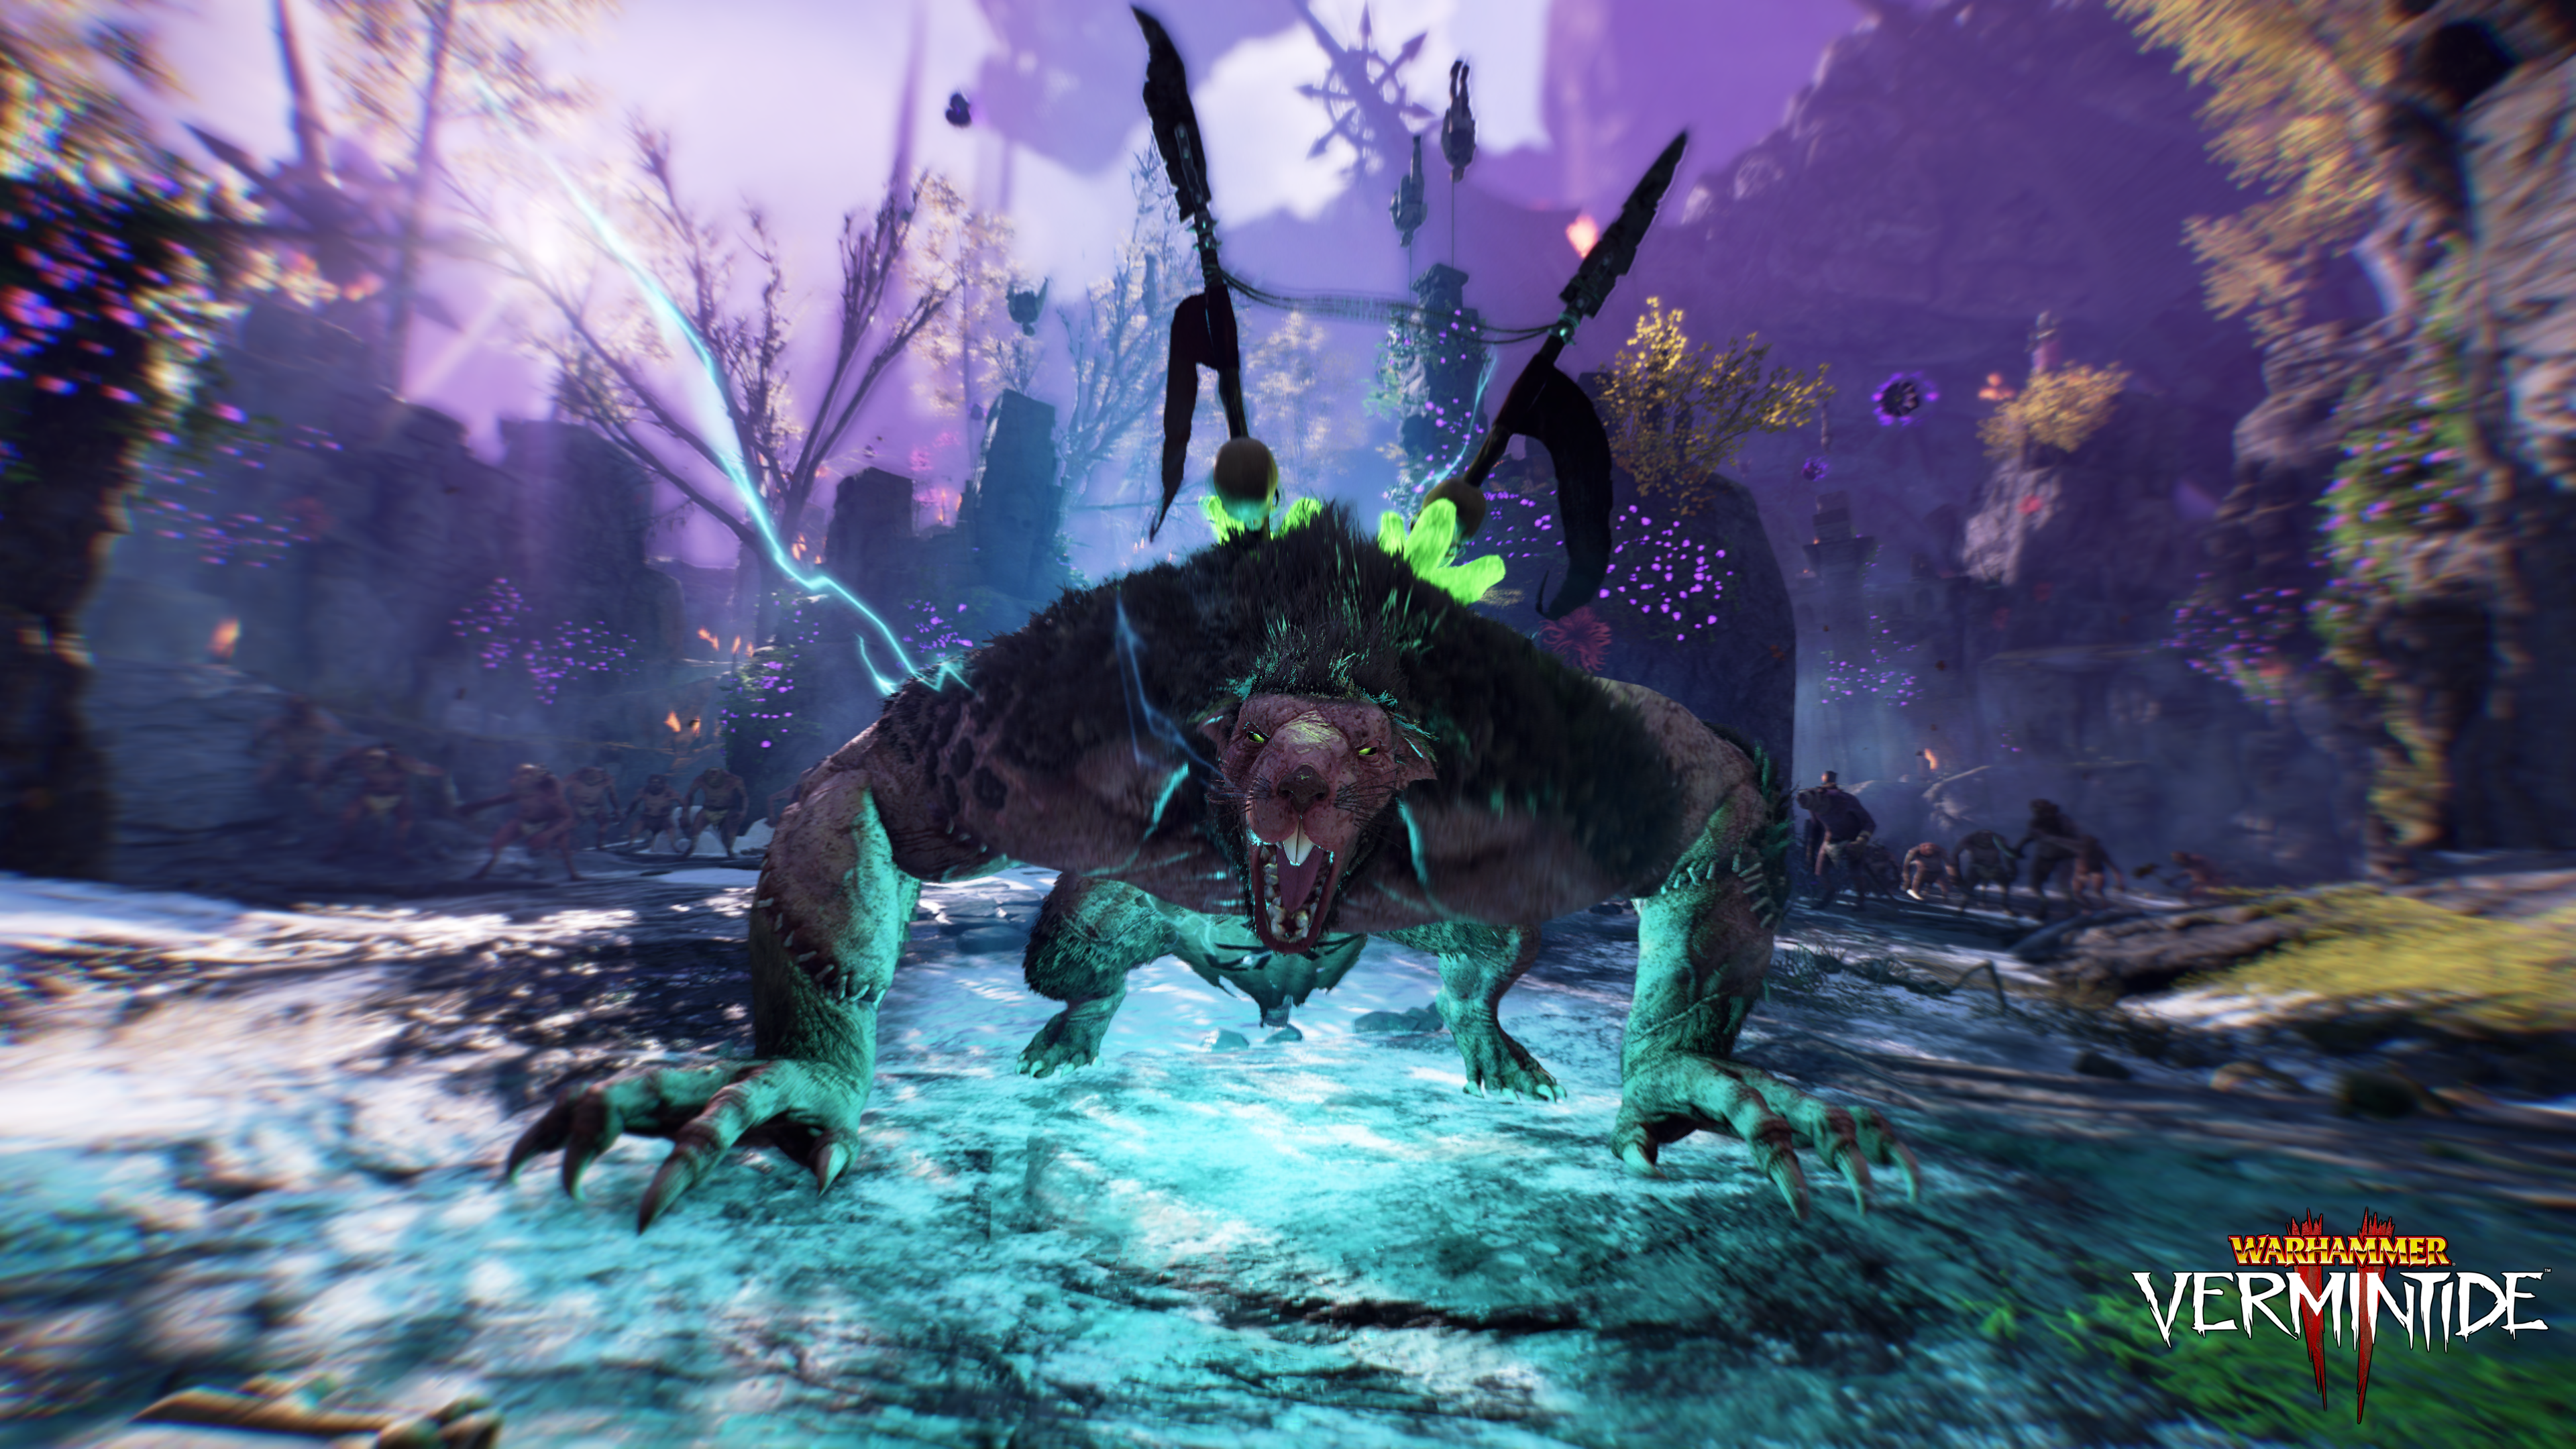 Vermintide 2: A giant rat beast crouches menacingly in the middle of the supernatural Chaos Wastes. Two spears are plunged through his back.